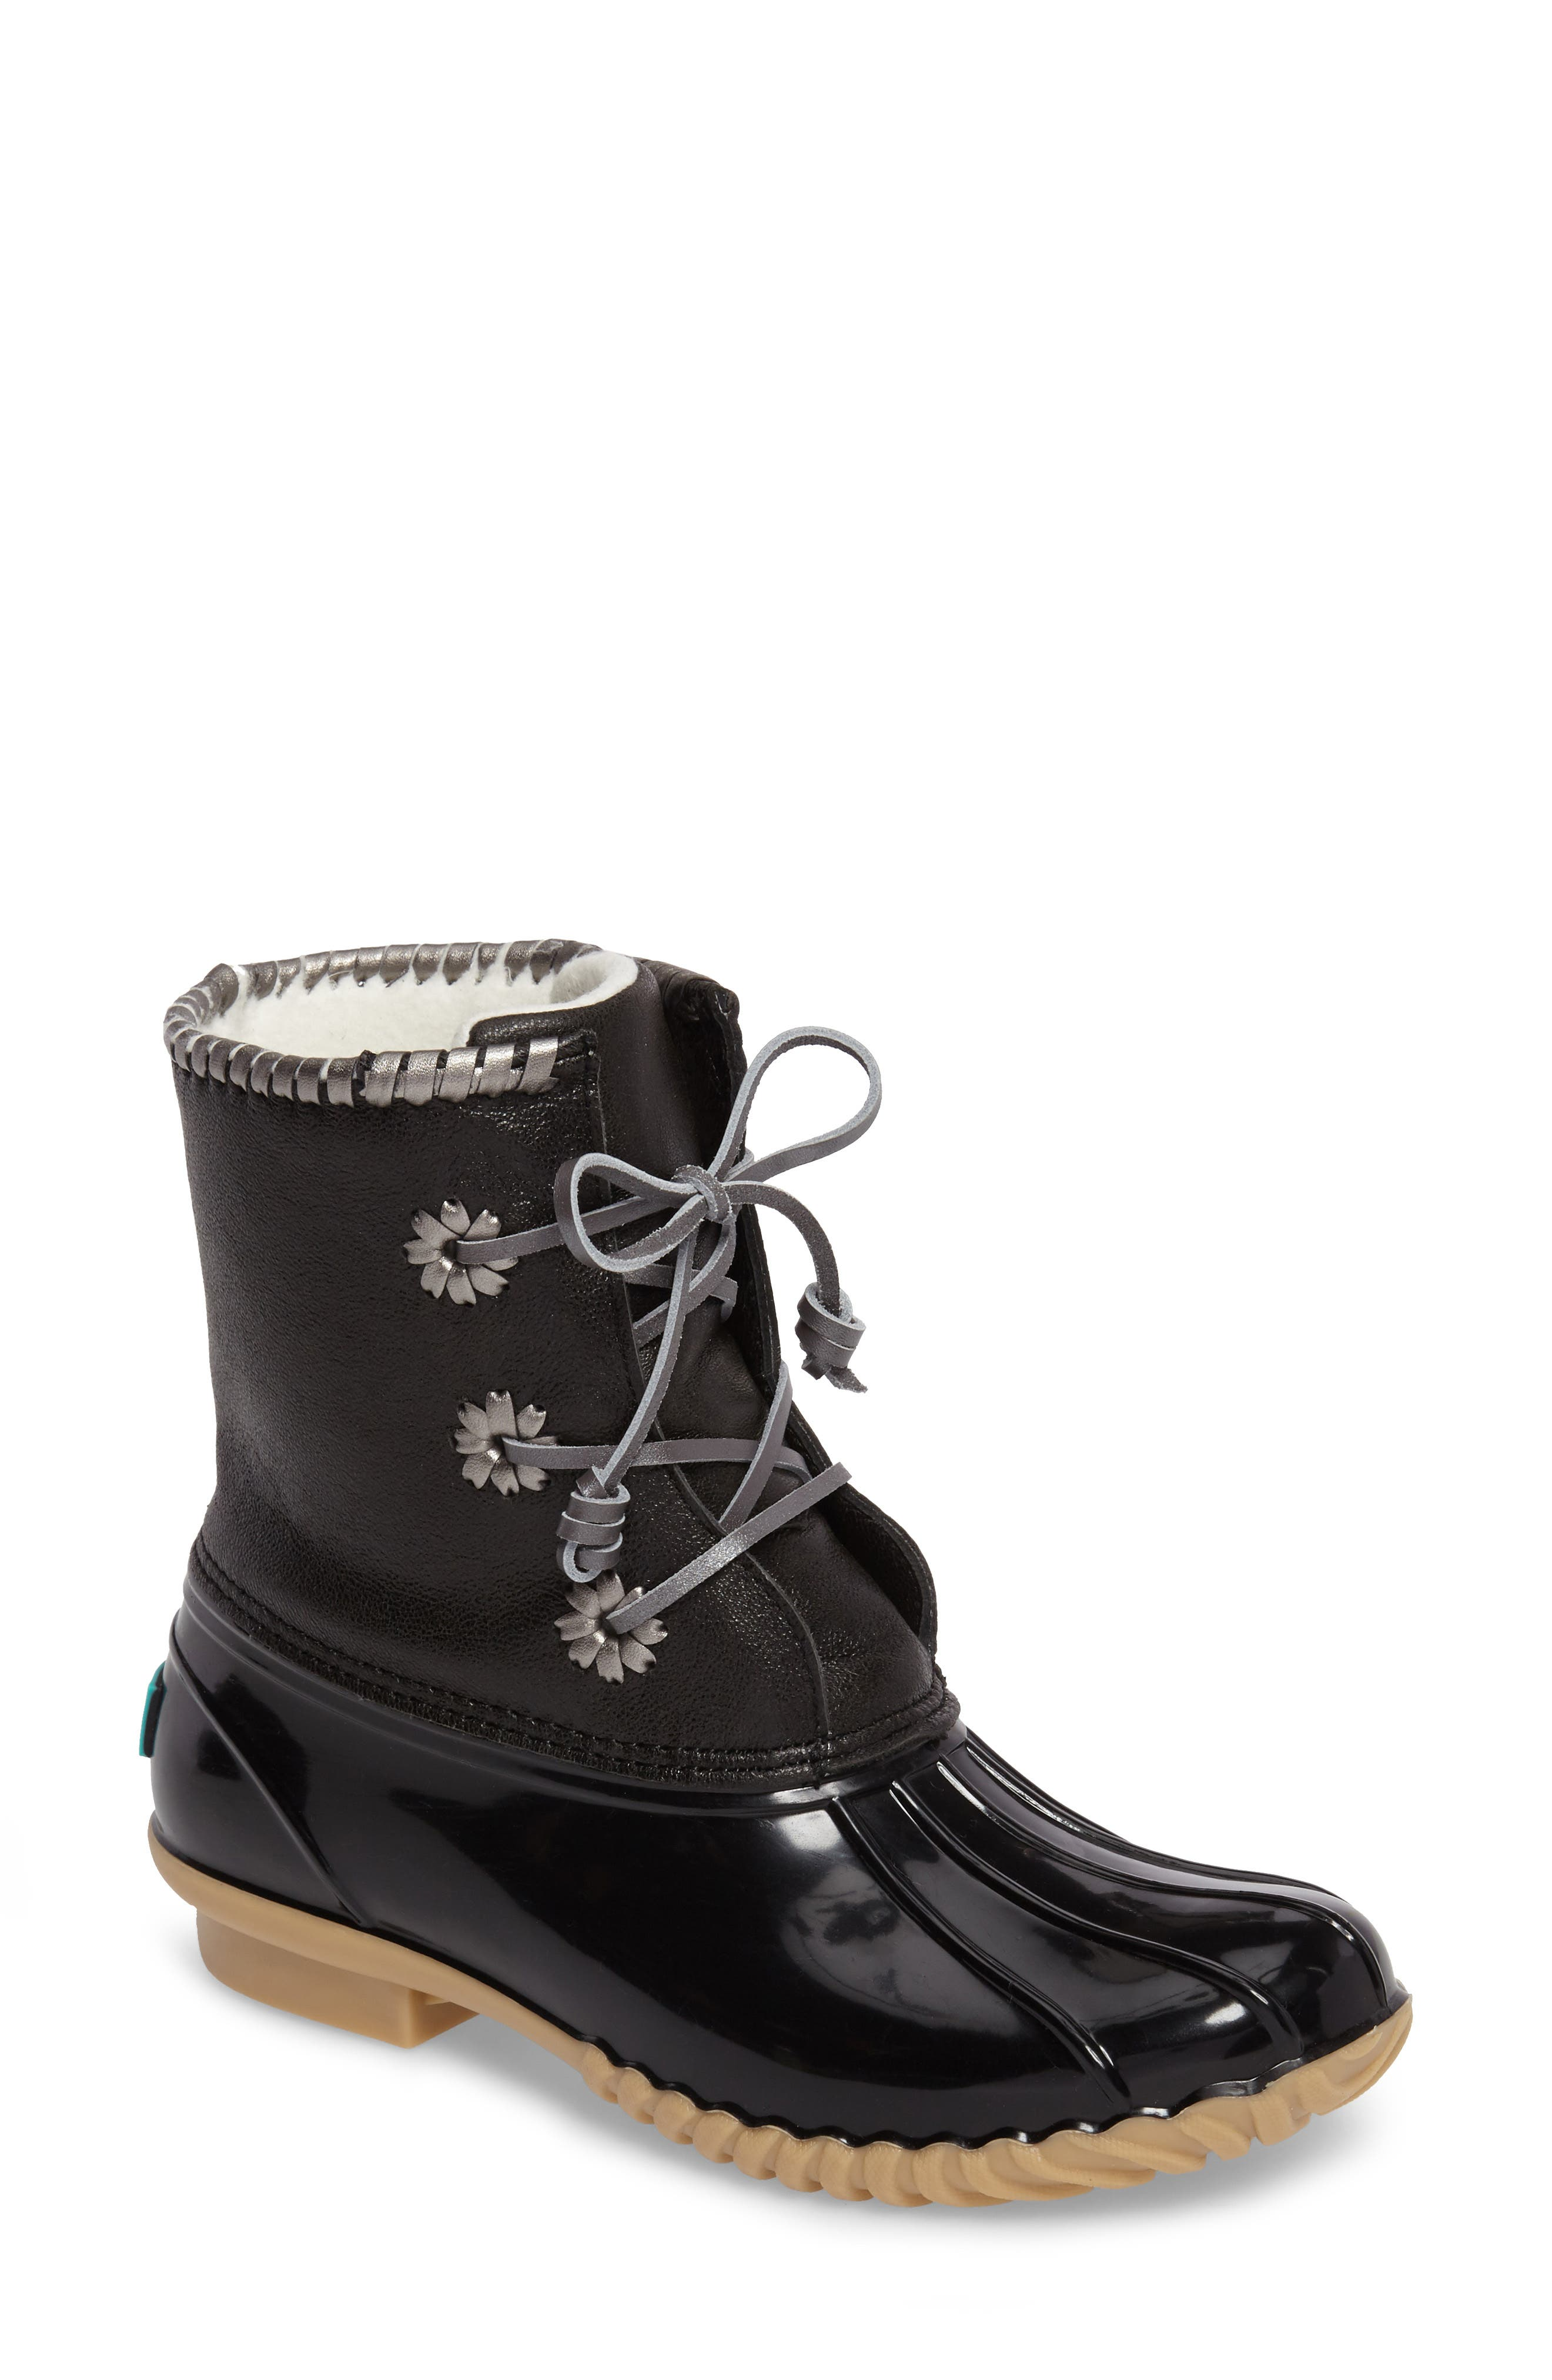 'Chloe' Rain Boot,                         Main,                         color, 003